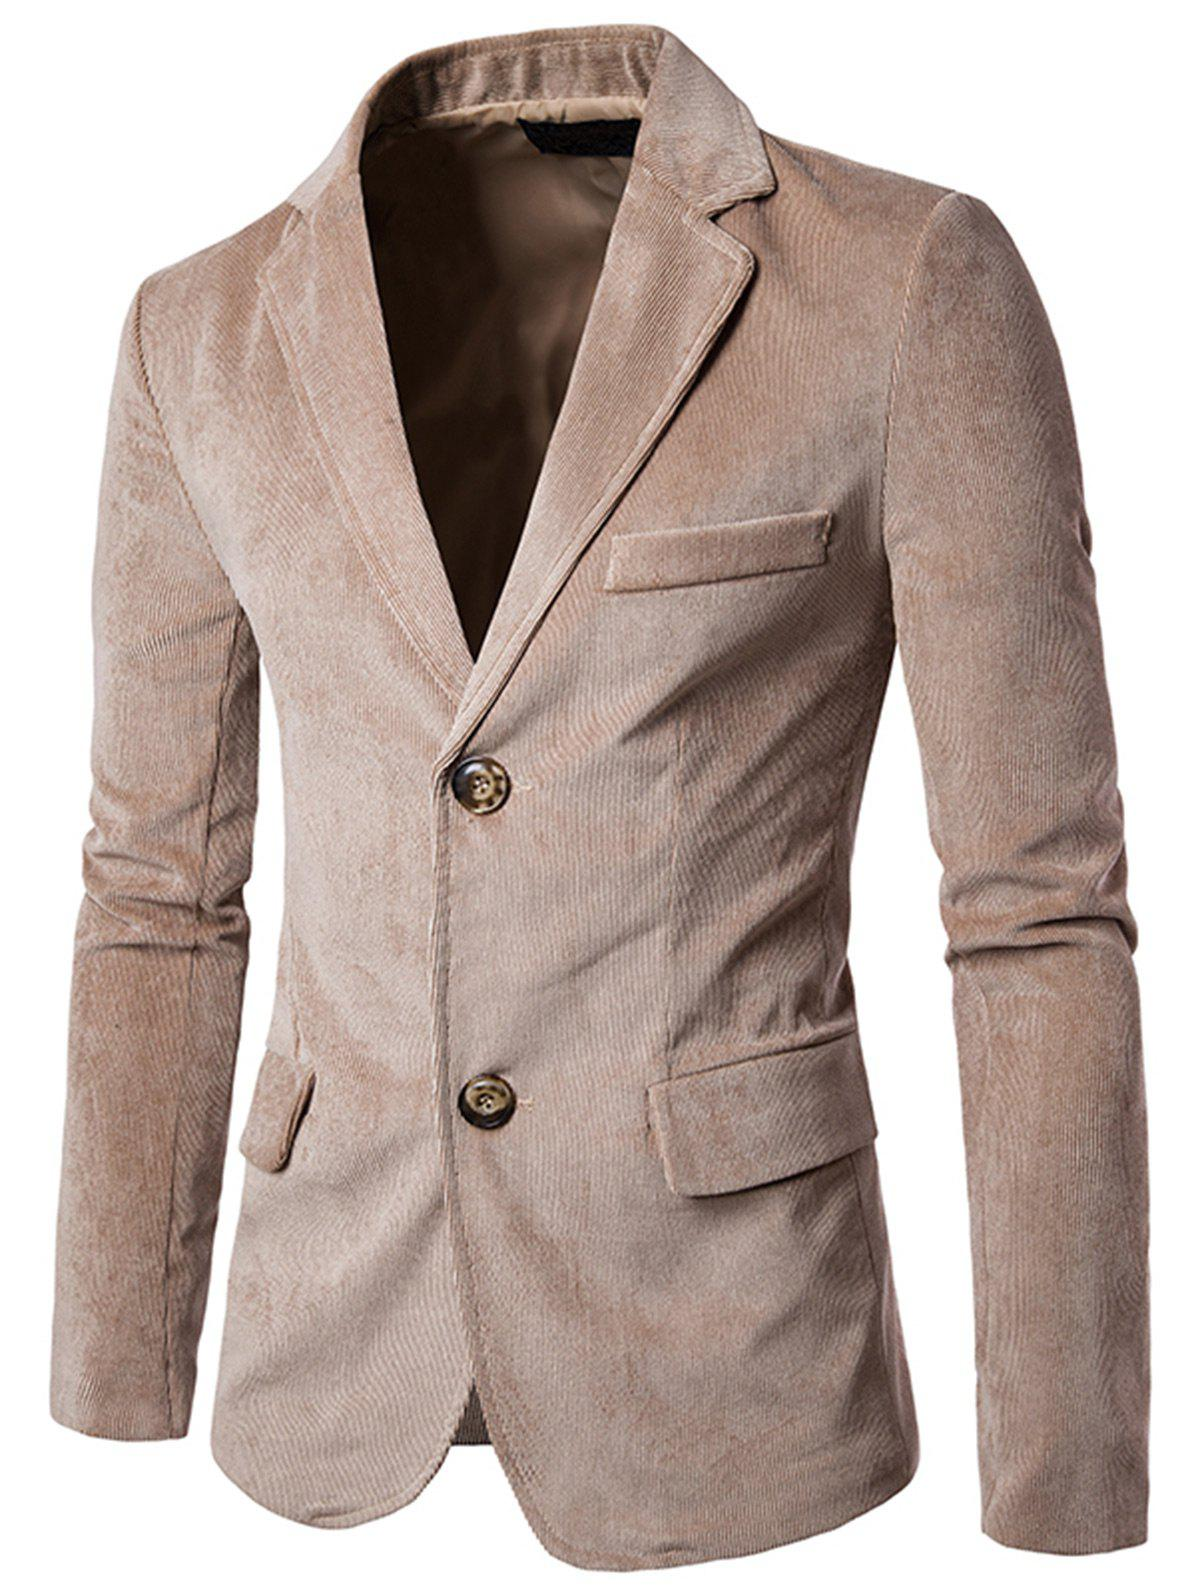 Flap Pockets Notch Lapel Corduroy Casual Blazer - CAMEL L